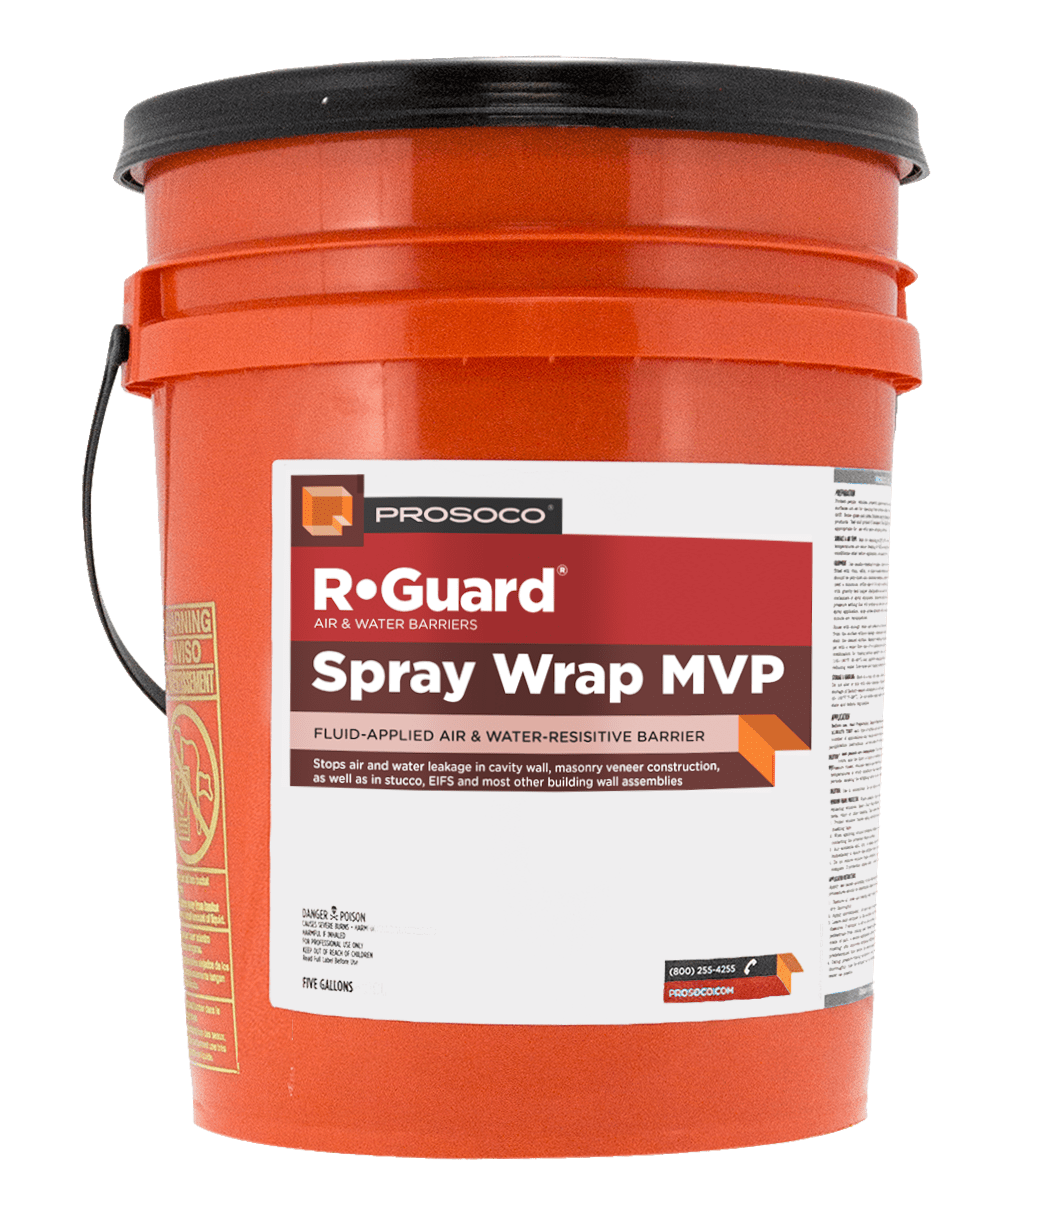 Spray Wrap Mvp